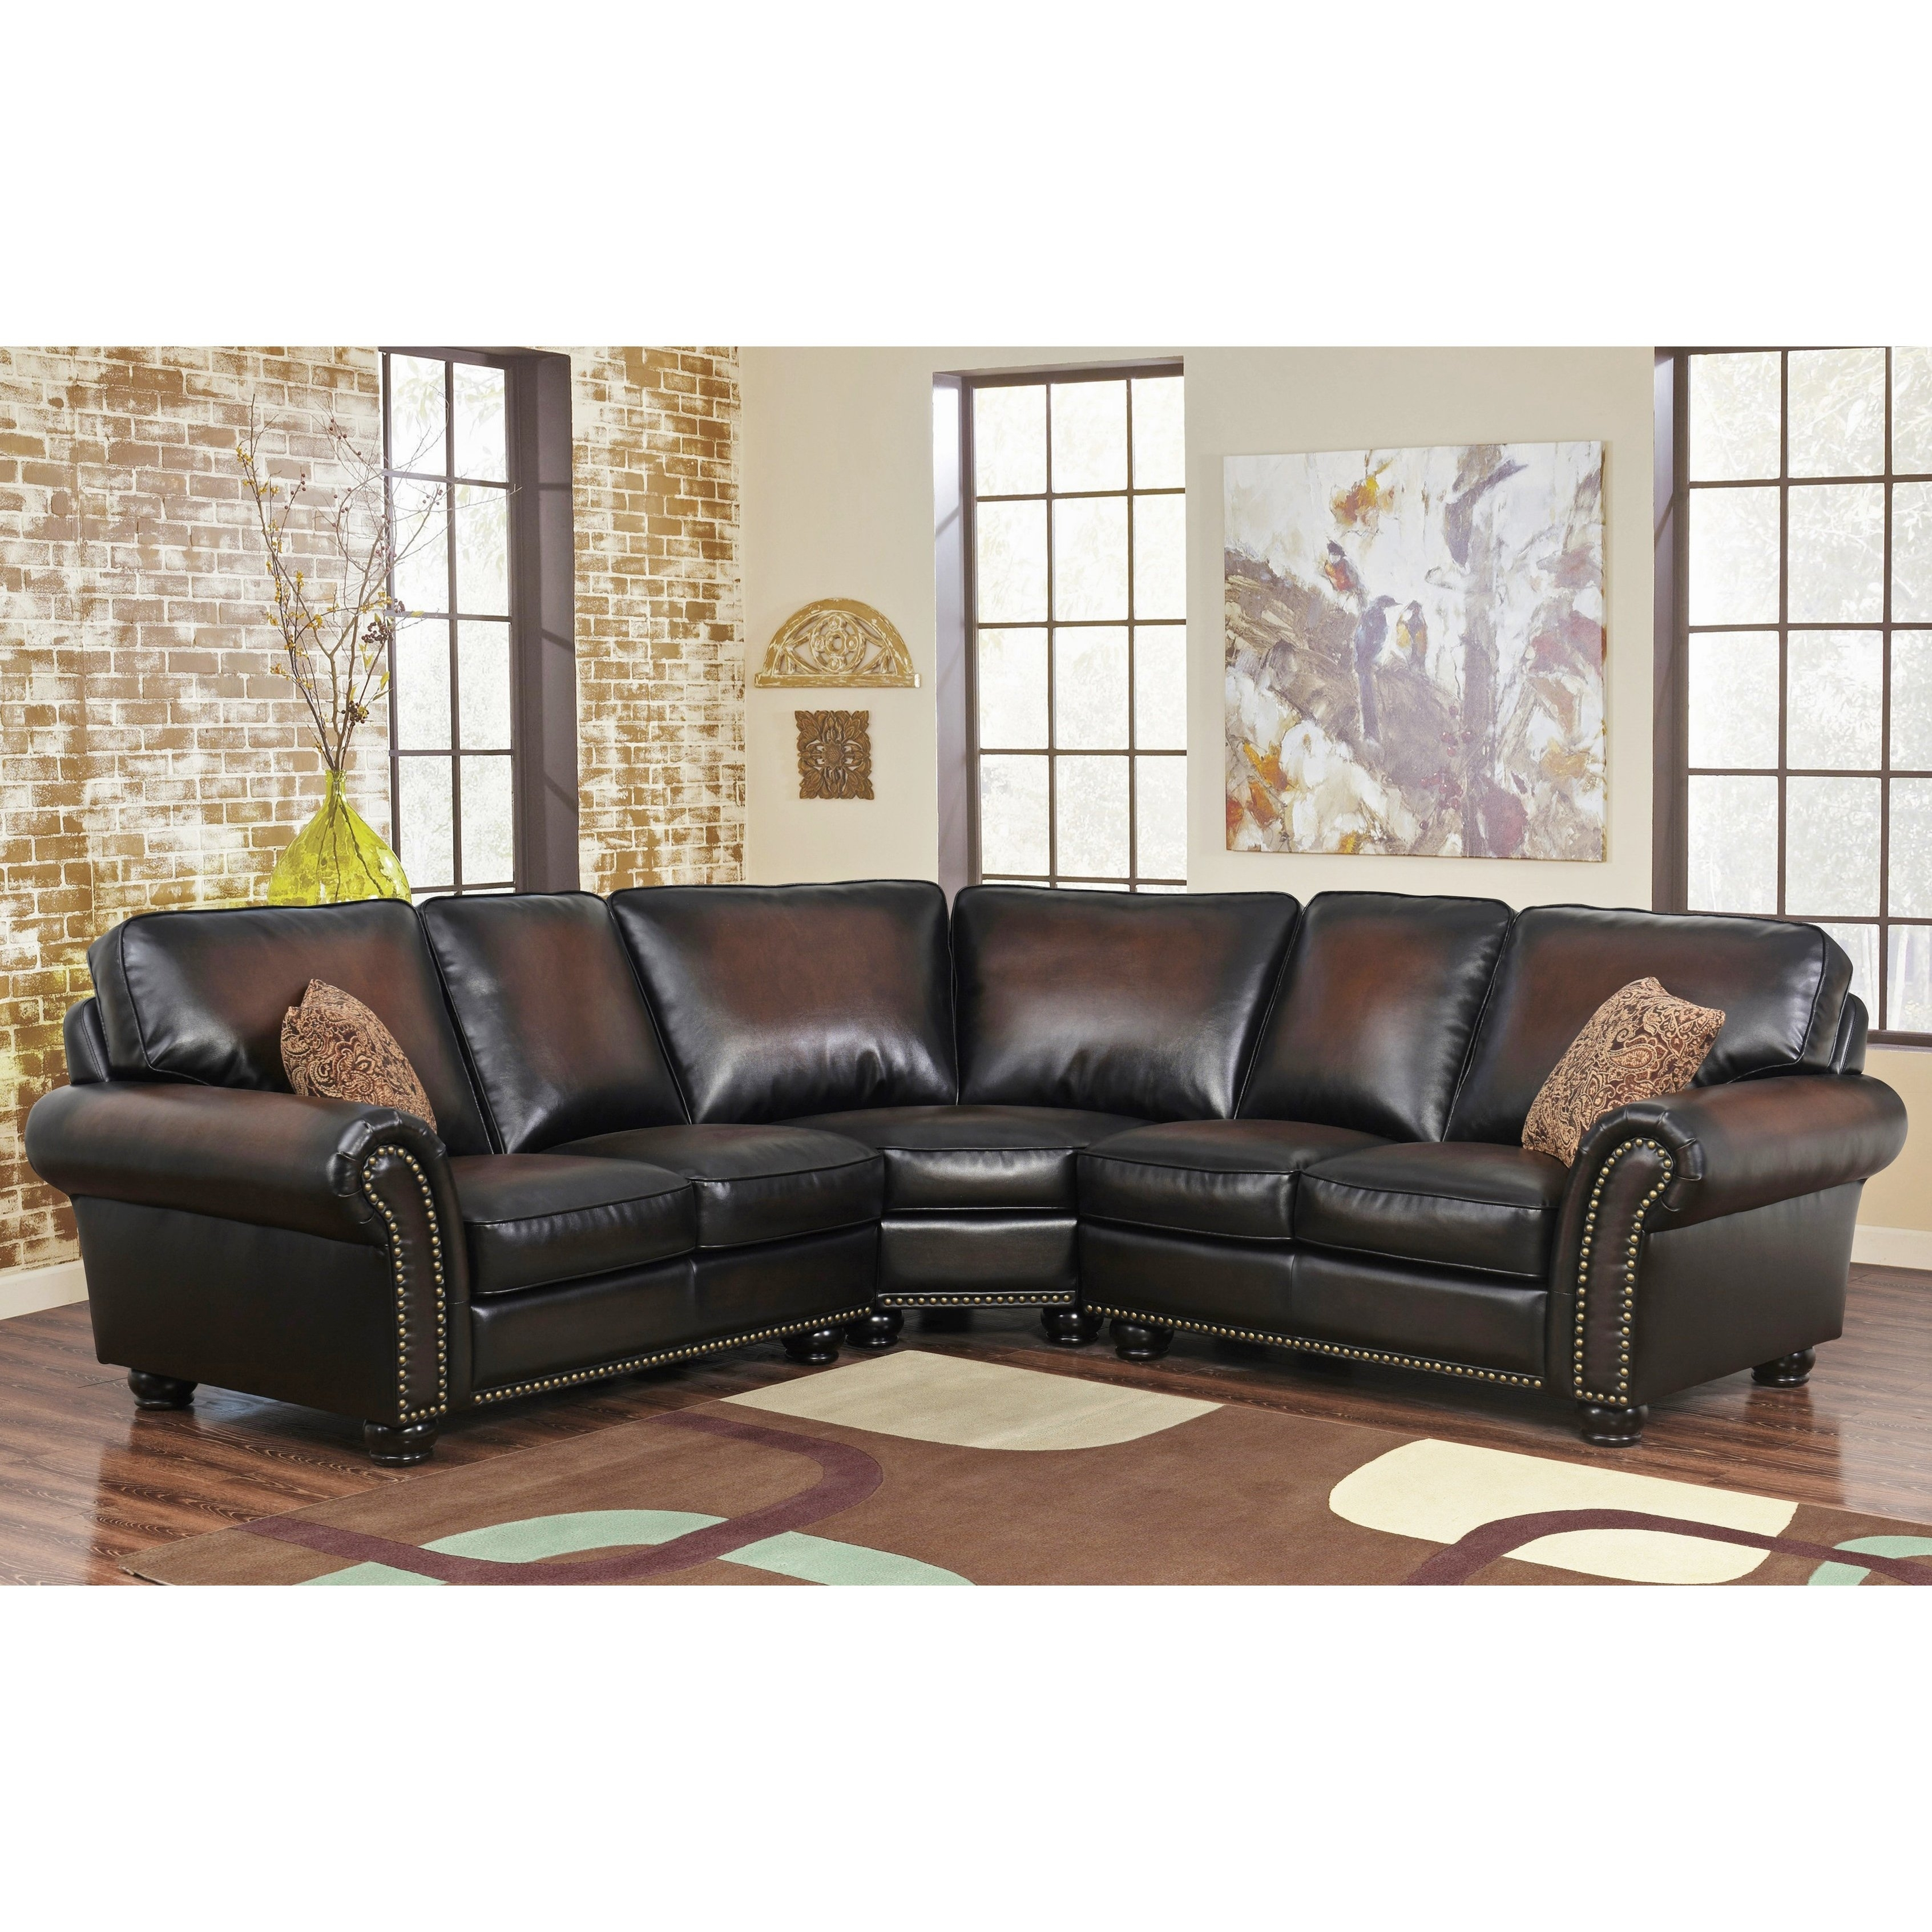 Shop Abbyson Melrose Bonded Leather 3 Piece Sectional – Free In Haven 3 Piece Sectionals (Image 22 of 25)